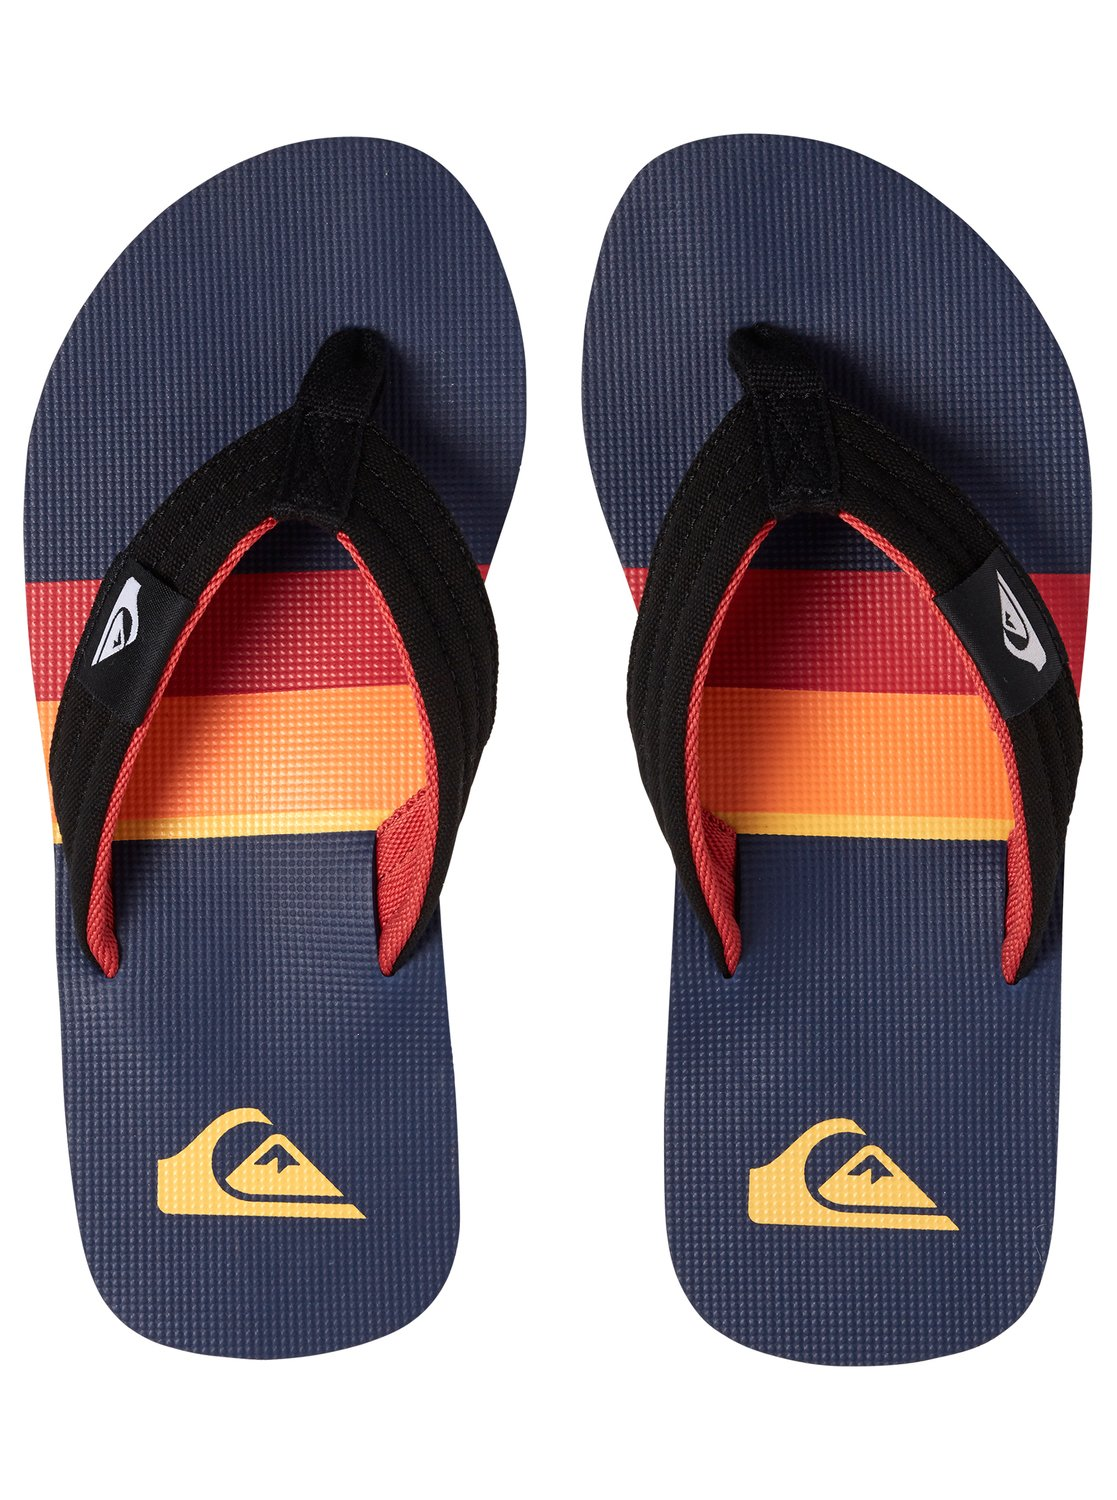 Quiksilver Kids Molokai Layback Youth Sandal